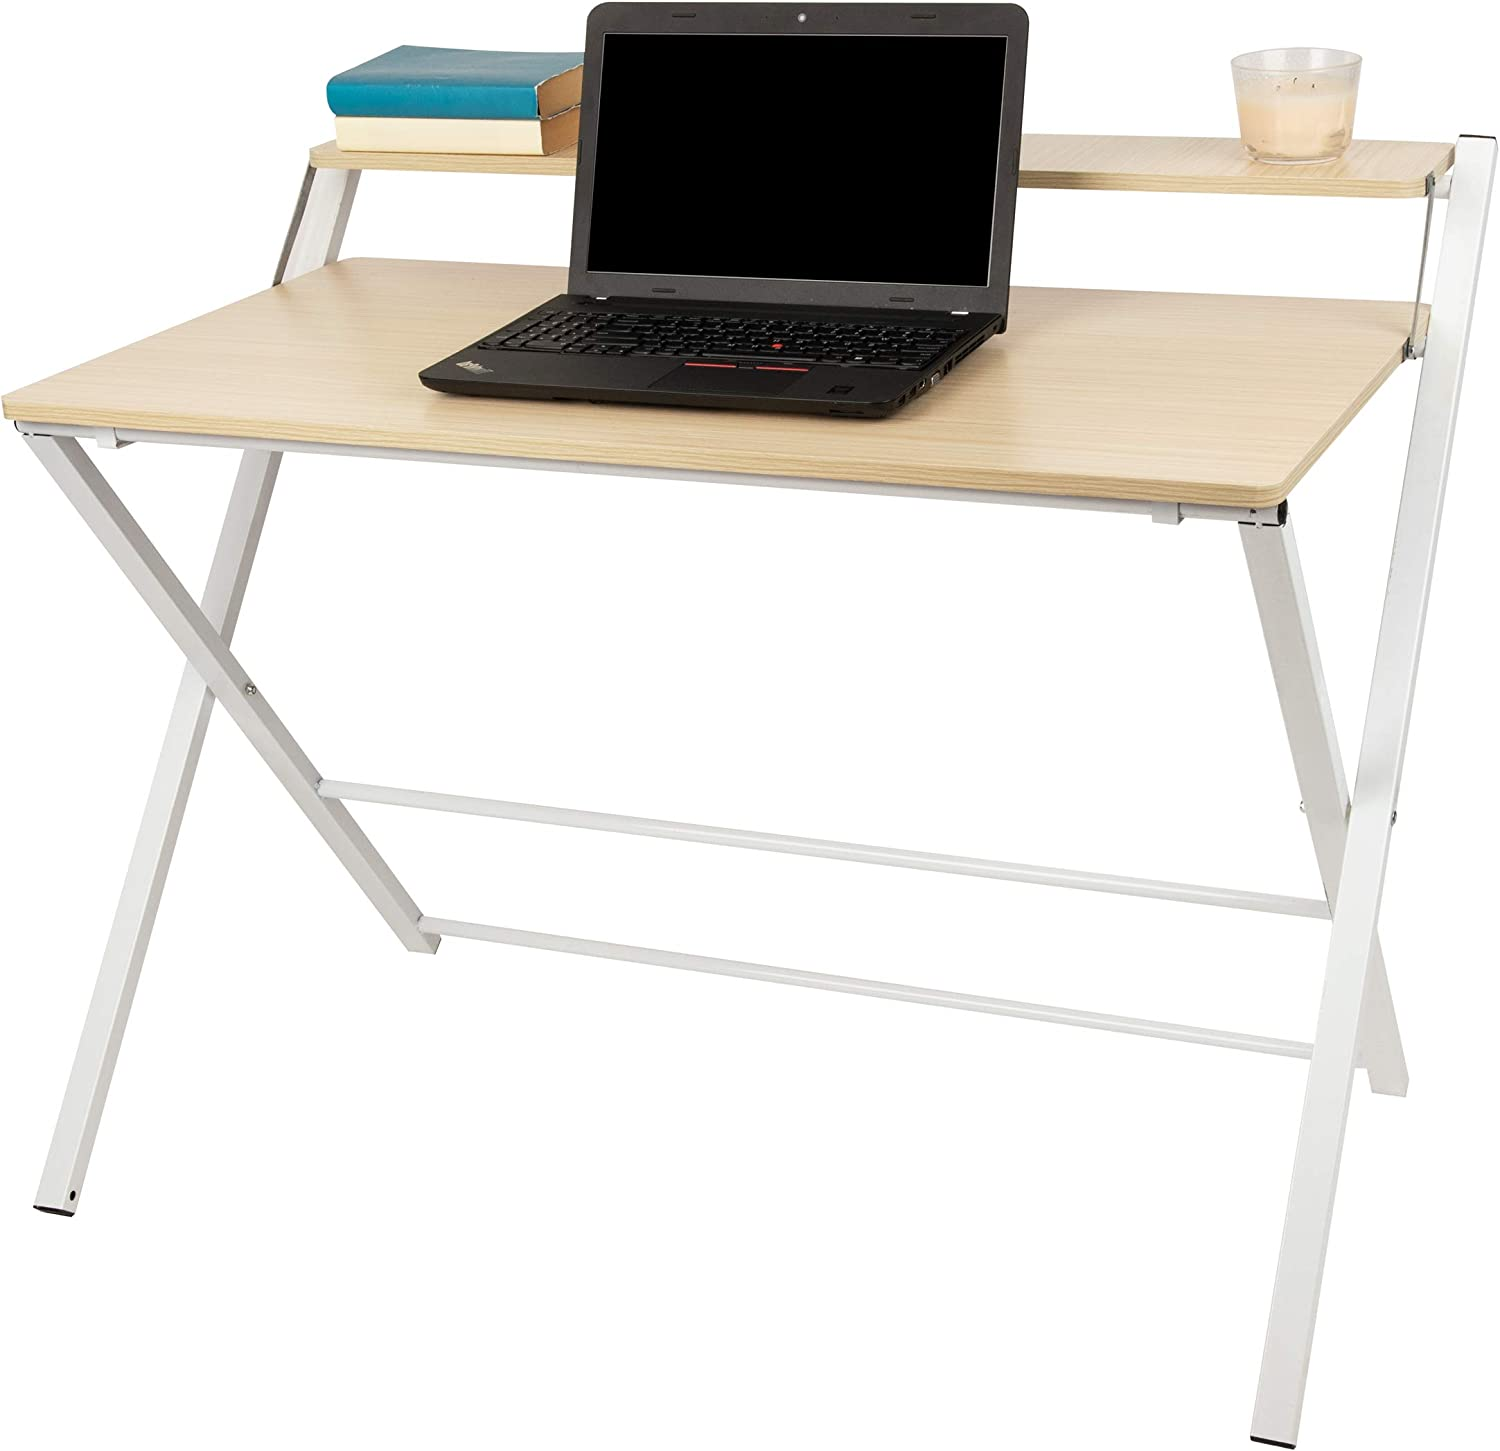 Mind Reader Folding Table Station Home Wood Of White Portable Sales for sale Courier shipping free